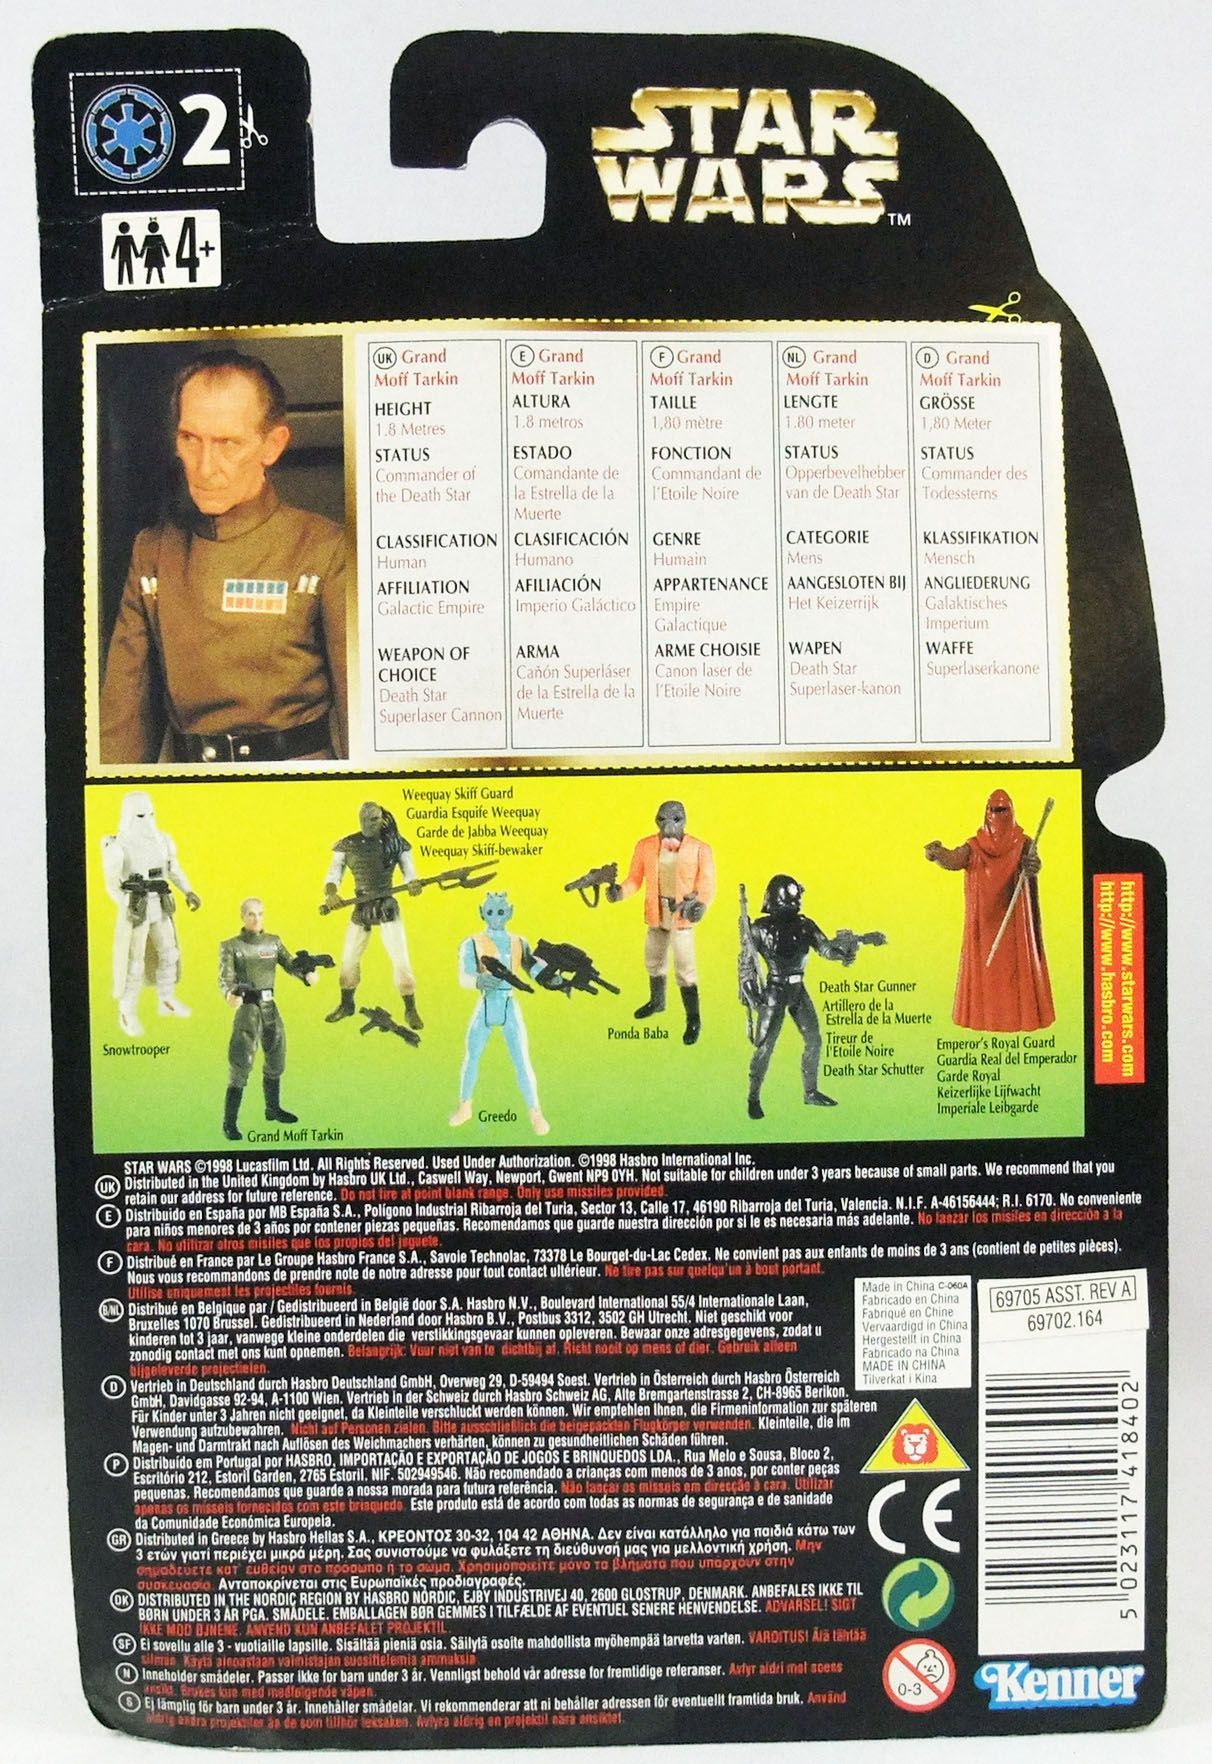 Star Wars (The Power of the Force) - Kenner - Grand Moff Tarkin (Version Europe)